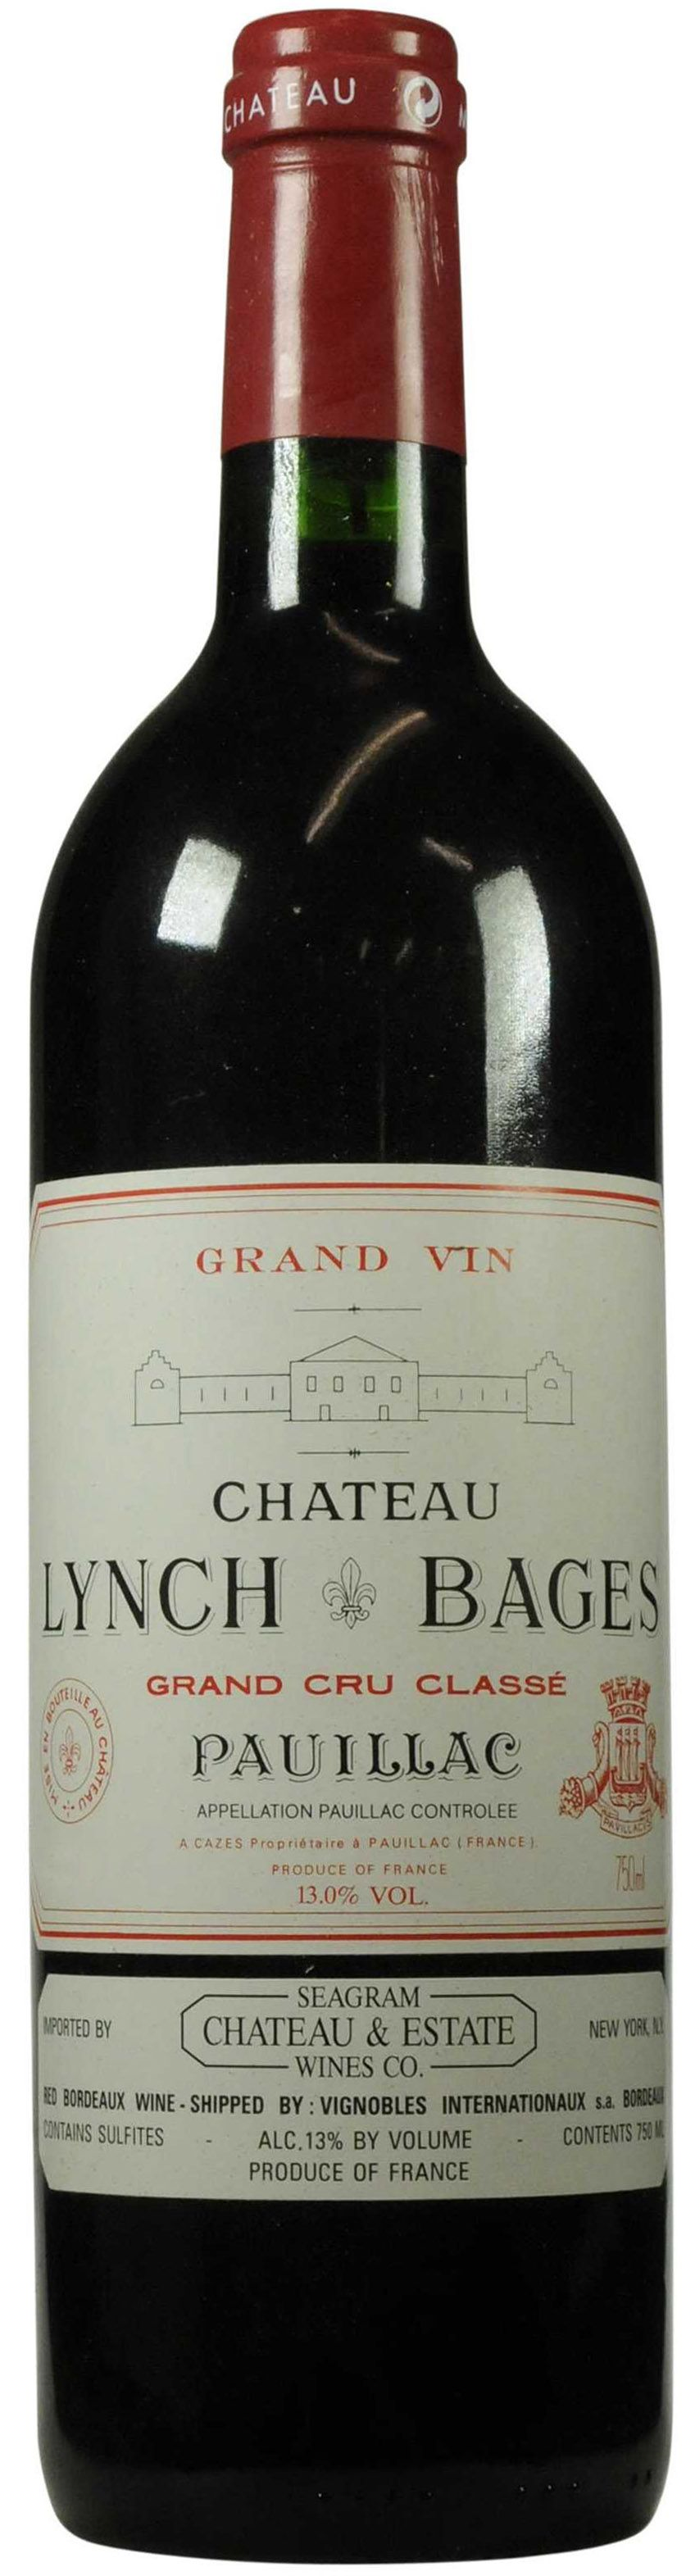 Chateau Lynch-Bages, 1995